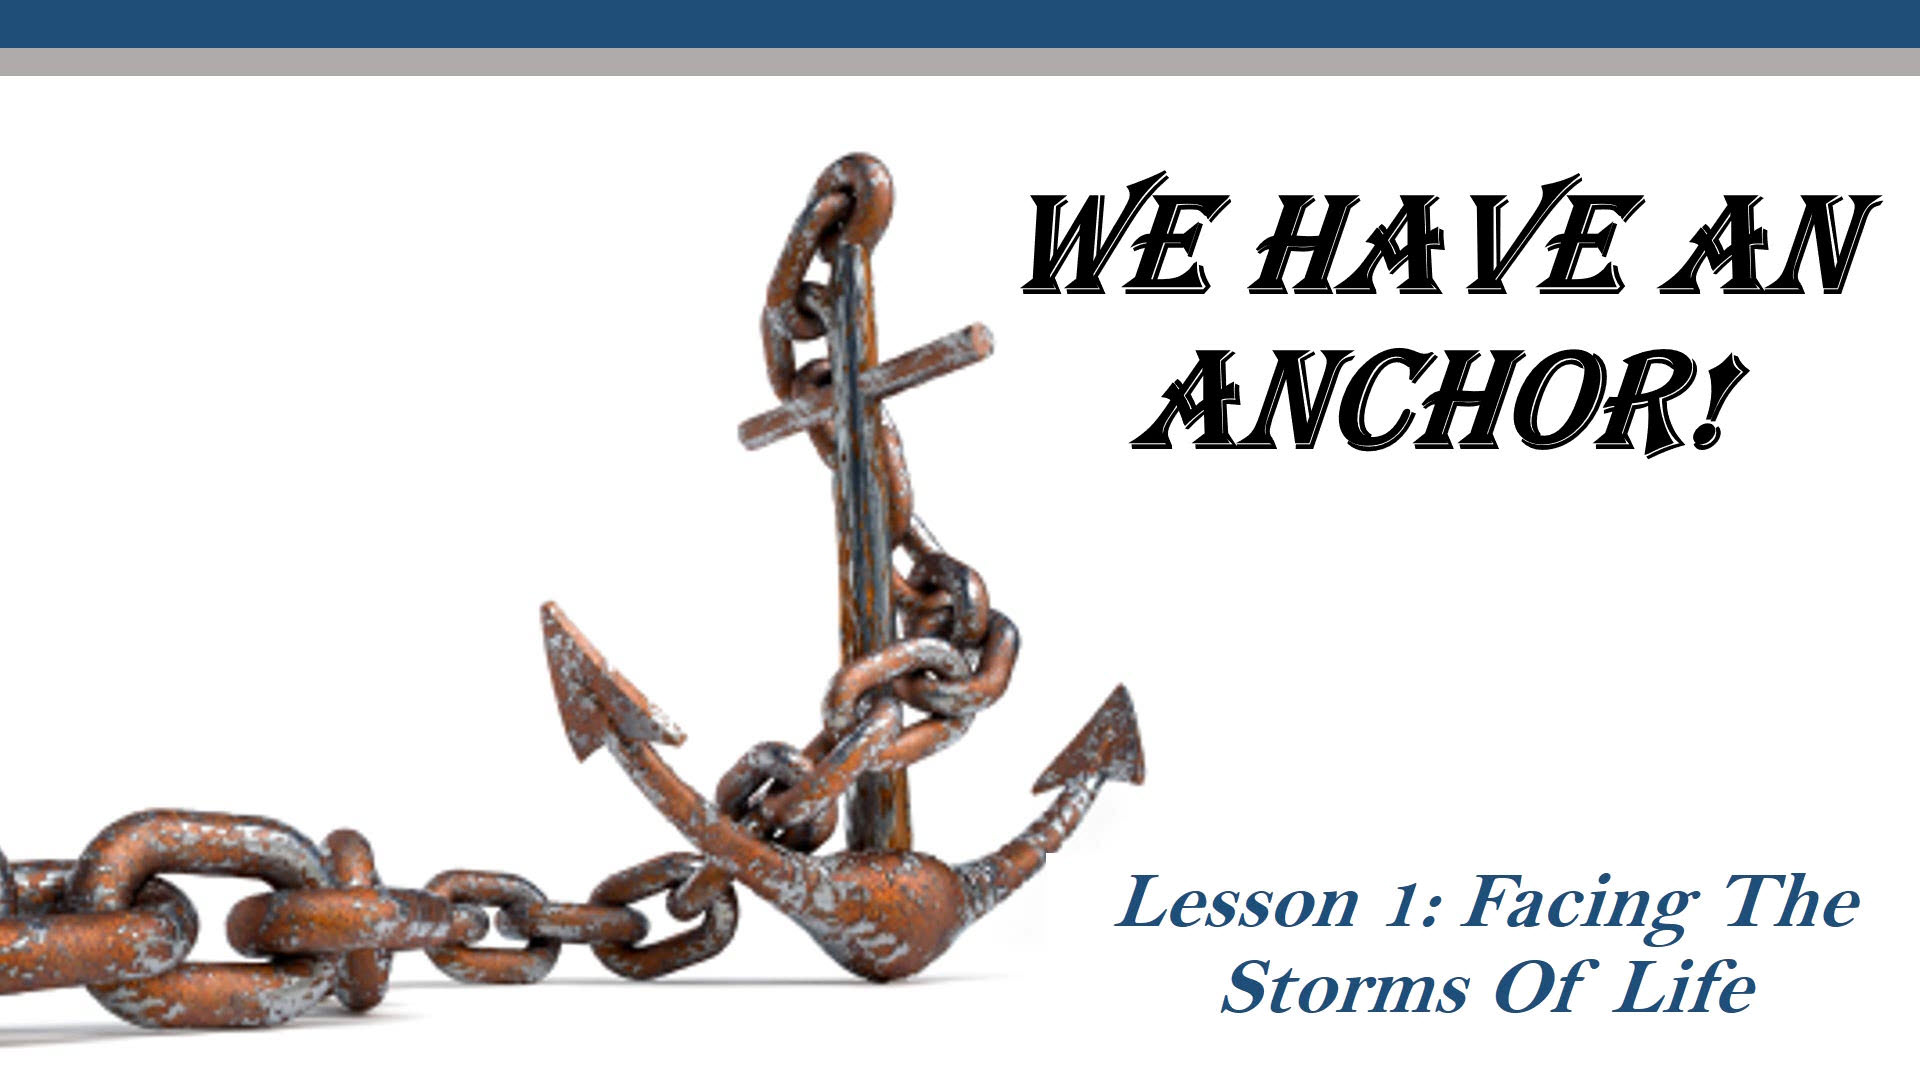 We Have An Anchor! (Lesson 1: Facing The Storms Of Life)